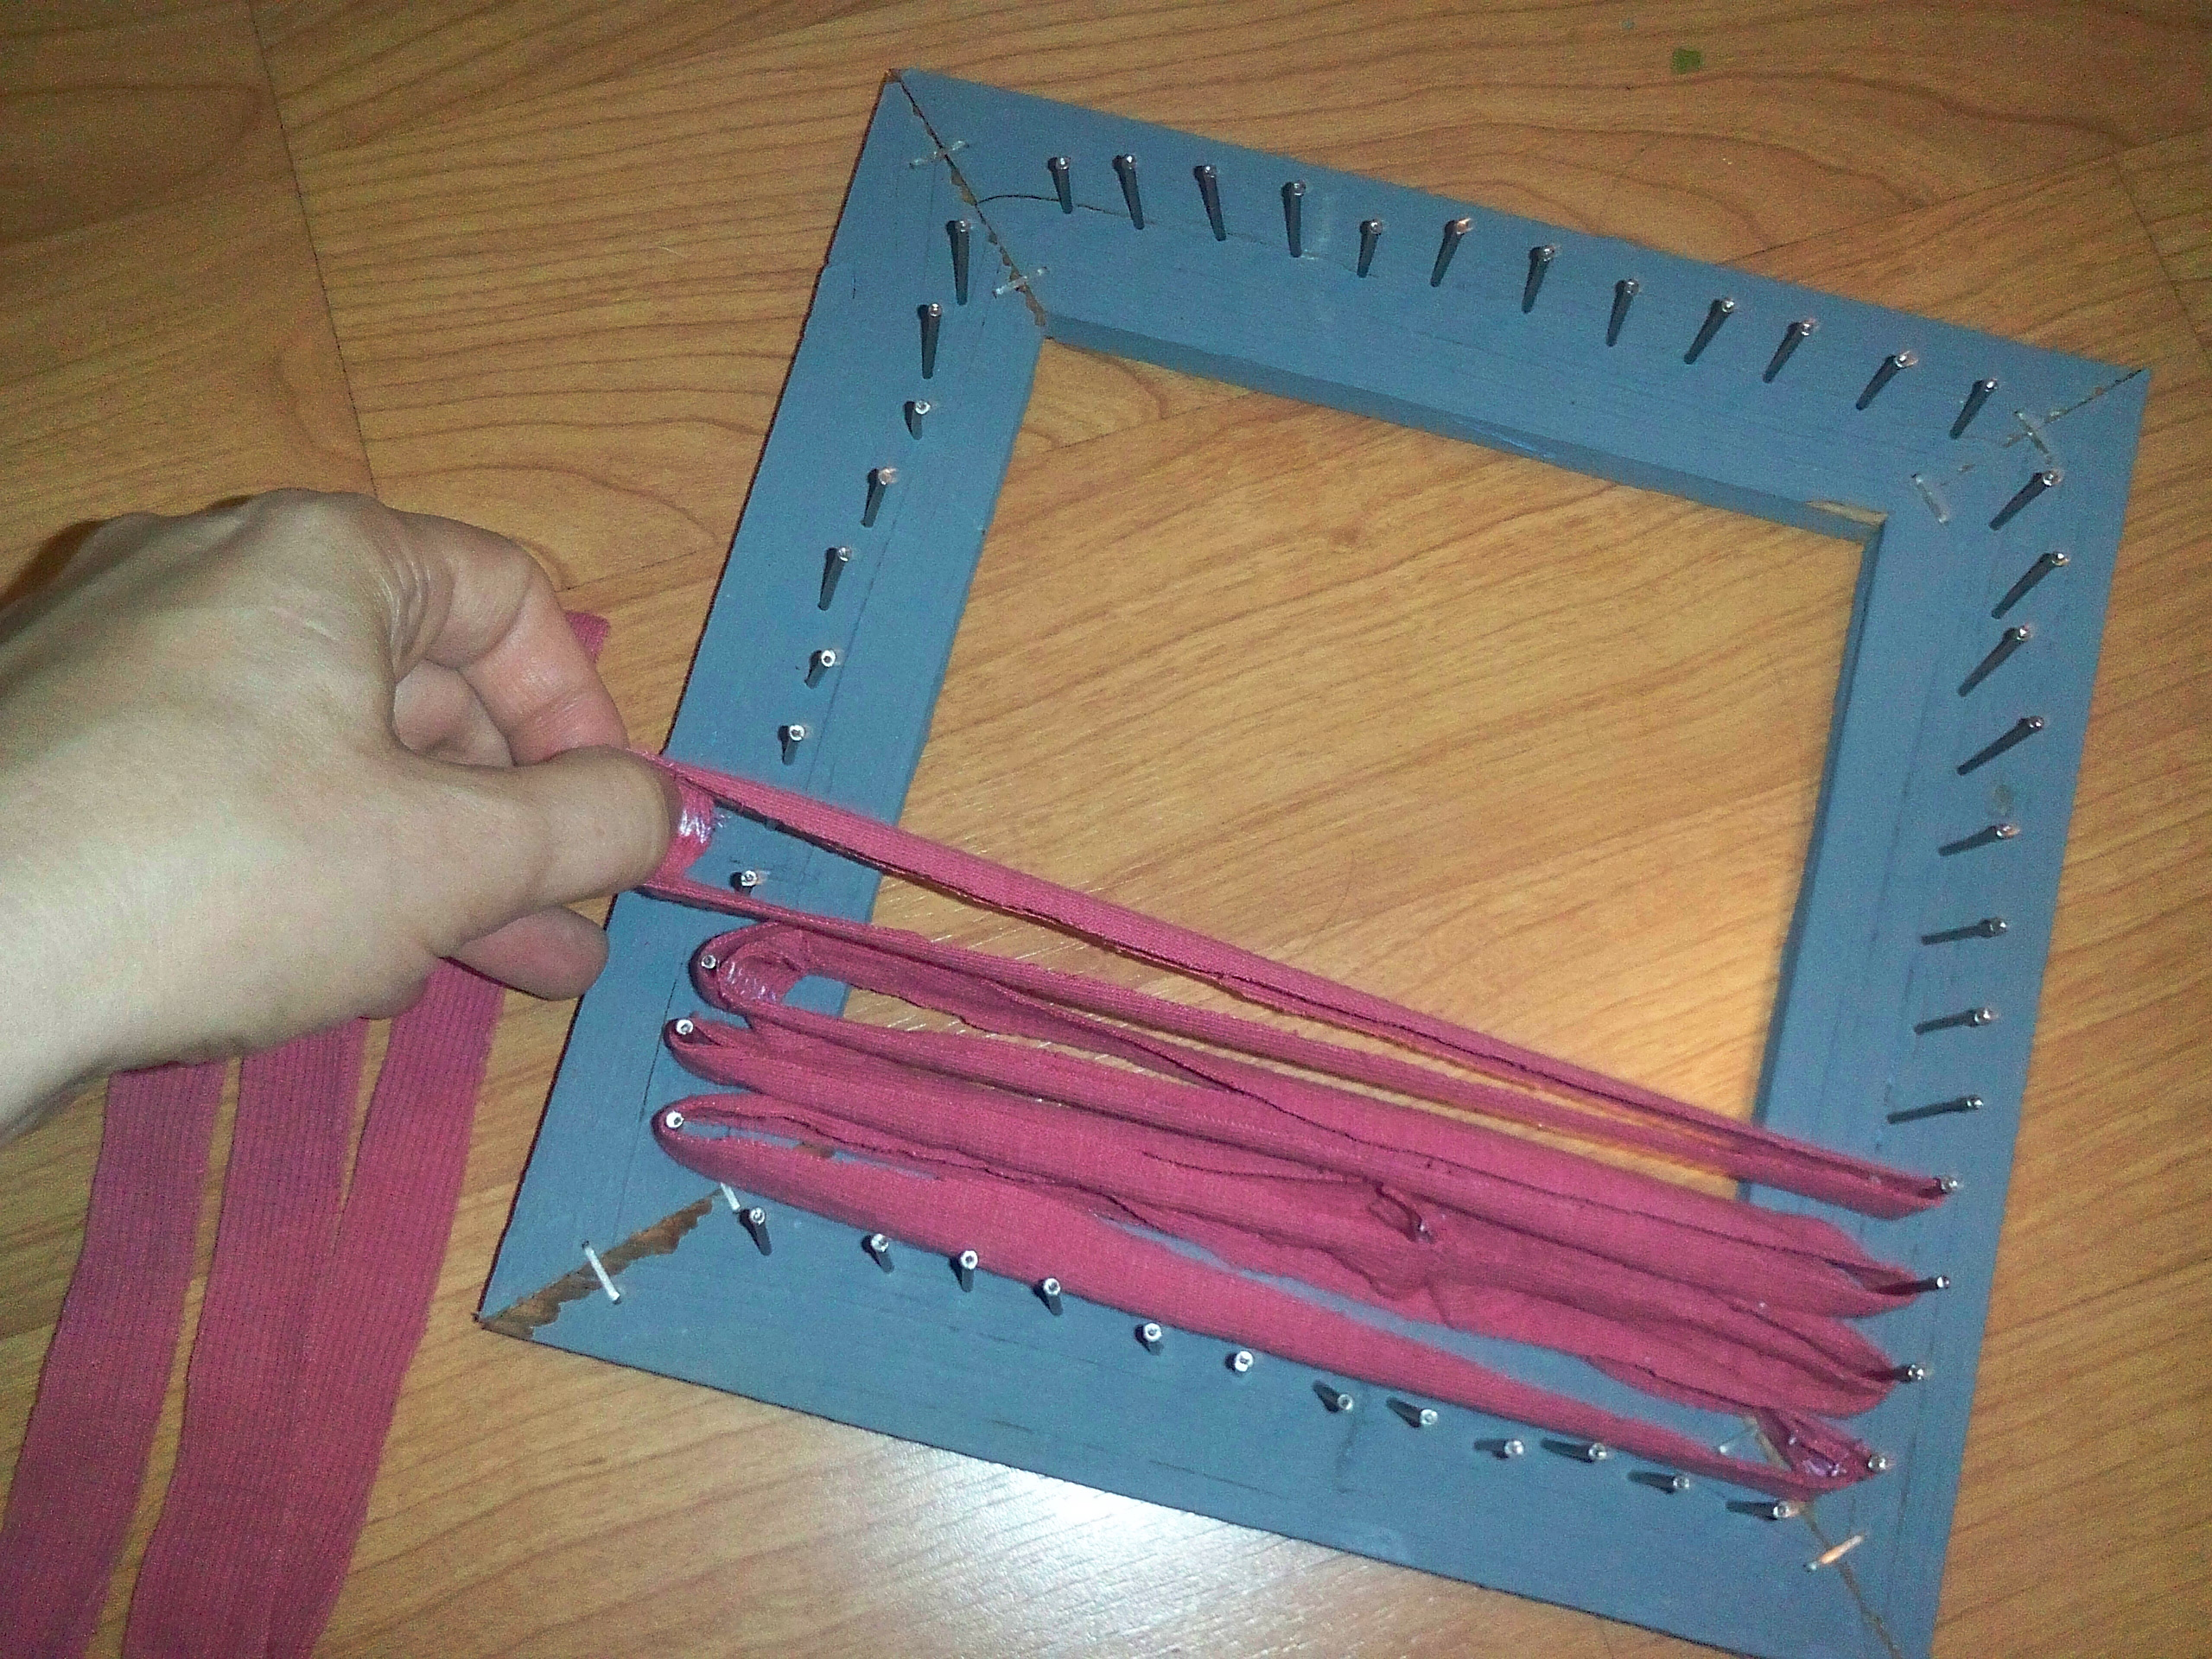 small-potholders-putting-on-vertical-loop